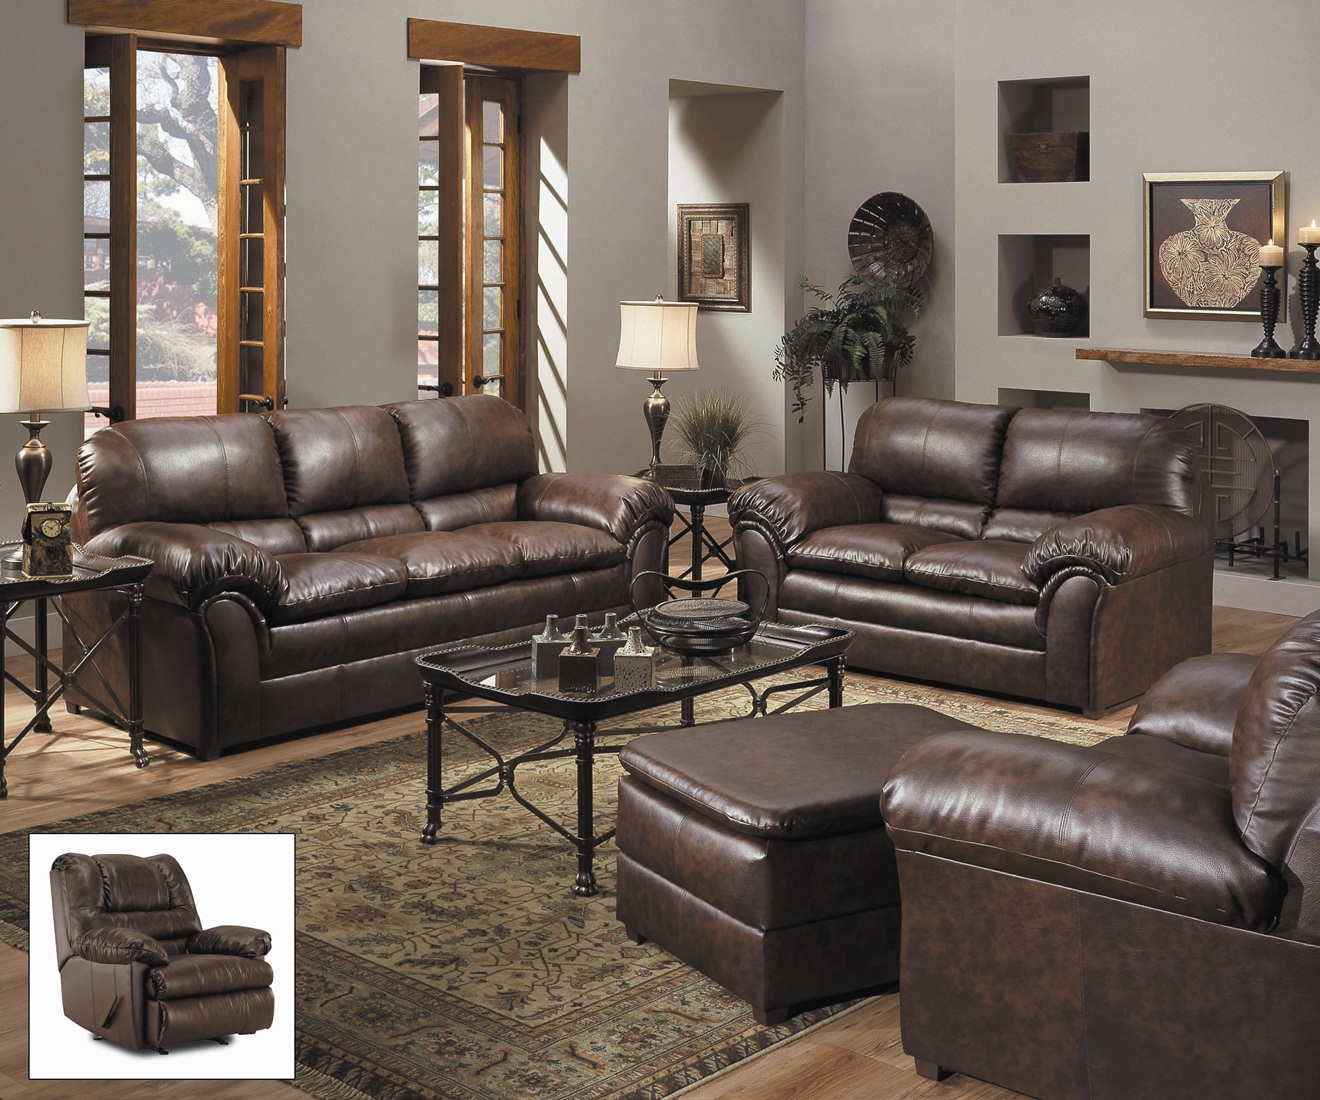 Geneva classic brown bonded leather living room furniture couch set Living rooms with leather sofas